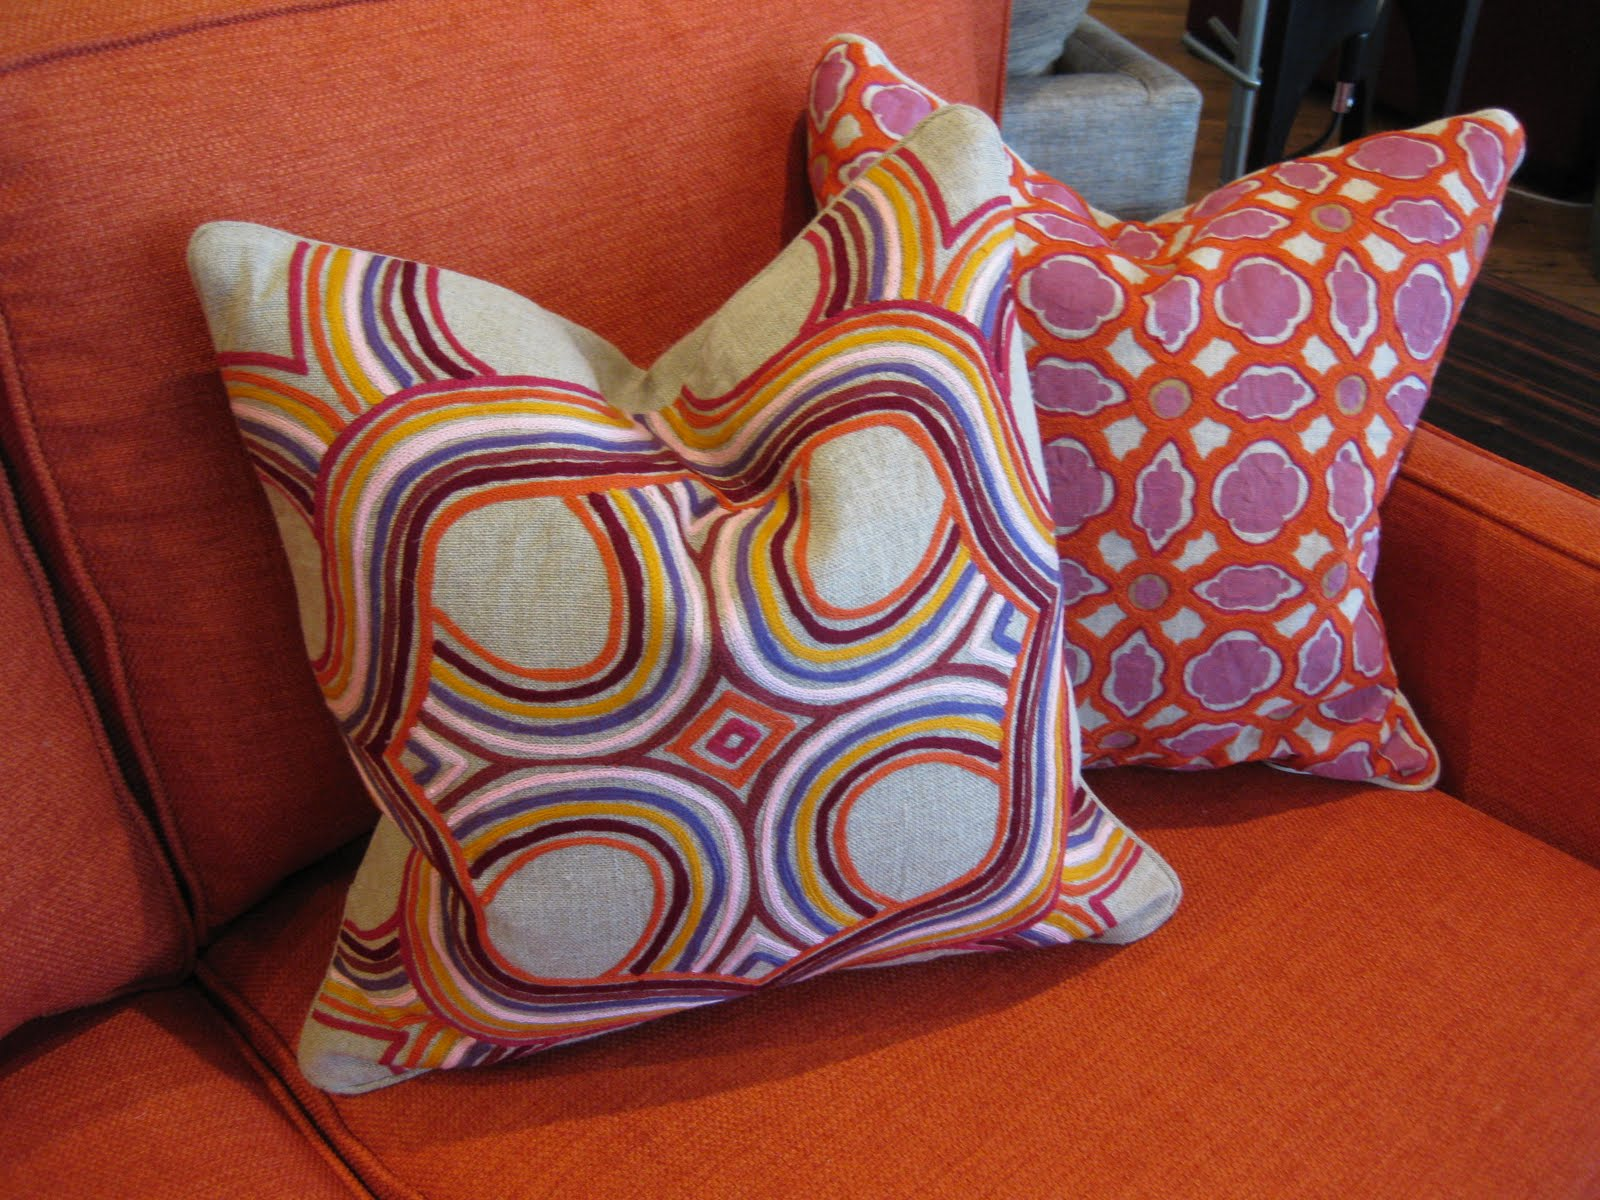 city life home blog villa pillows - good thing villa pillows got here just in time they range from  to check out the photos below and let us know what you think of our newestline